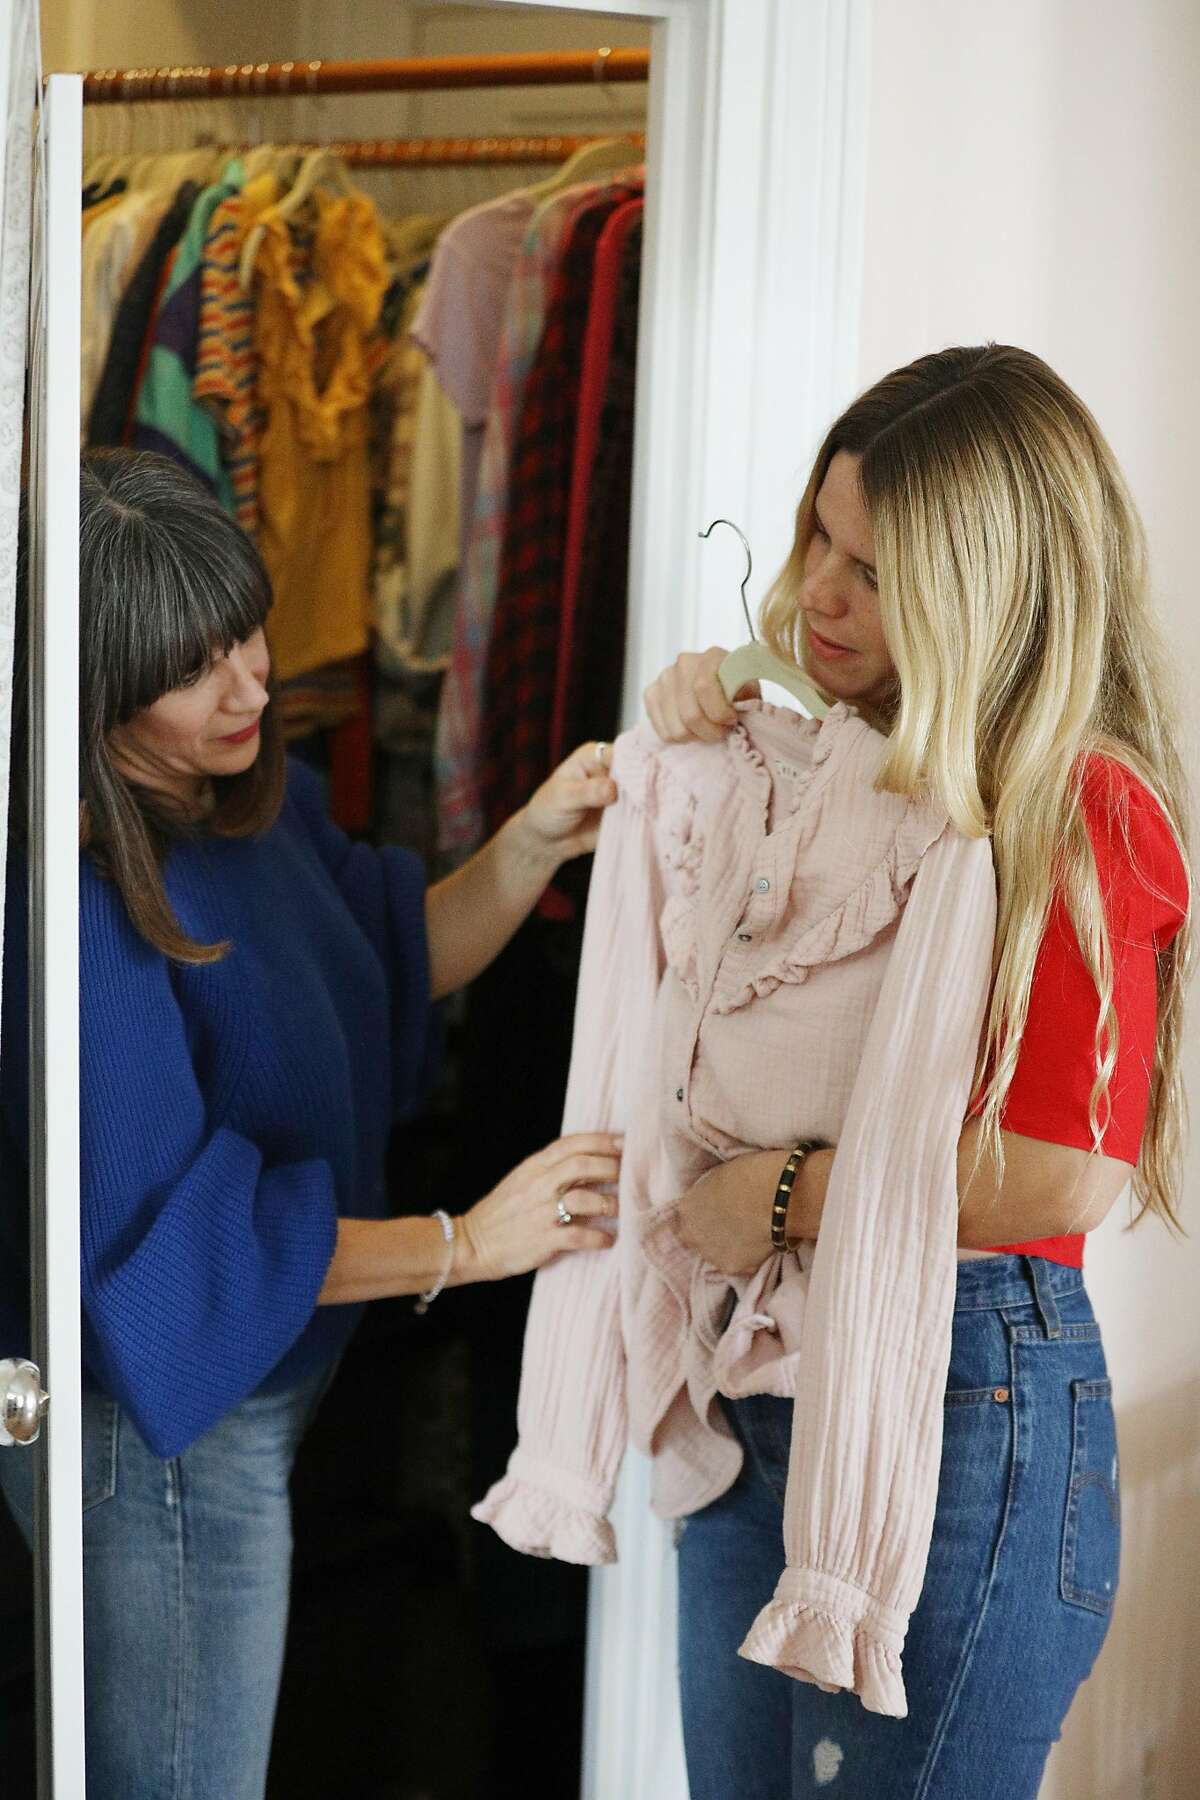 Mira Pickett (l to r), owner Mira Mira The Edit, and client Joanna Riedl discuss a top from Riedl's closet during a a closet and style consultation on Monday, February 4, 2019 in San Francisco, Calif.